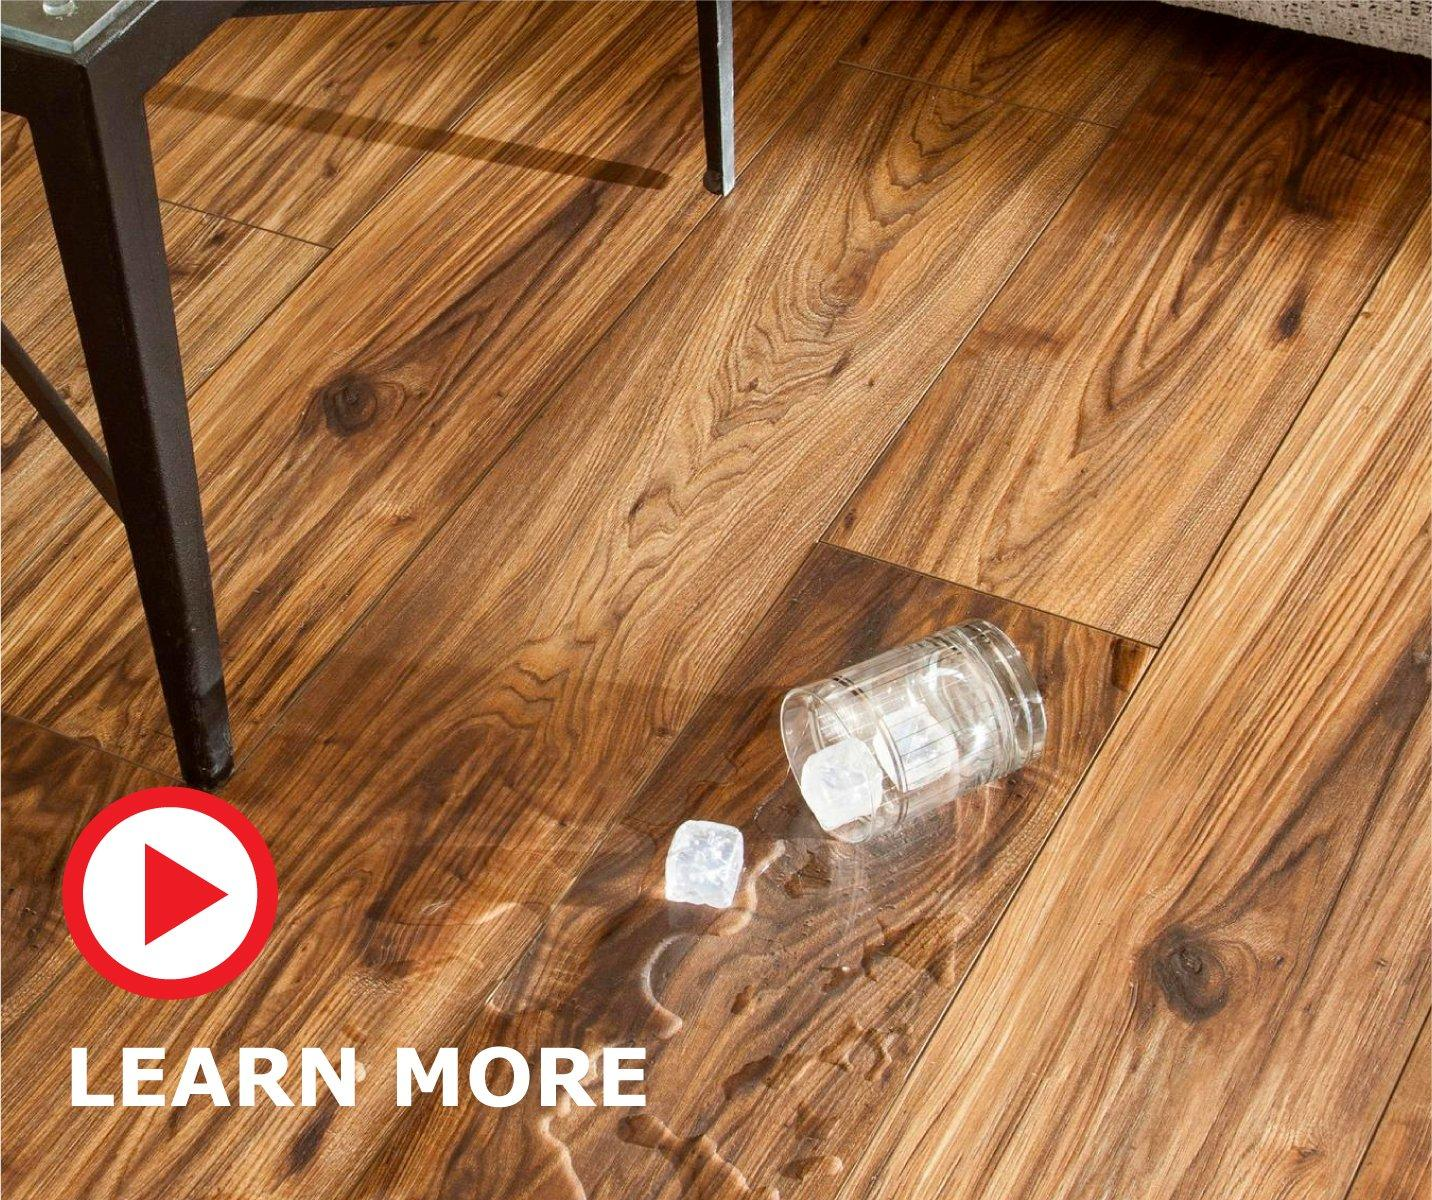 NEW and exclusive to Floor \u0026 Decor AquaGuard ® is a water-resistant laminate that looks and feels like authentic hardwood. There\u0027s now a laminate option ... & Aquaguard ® Laminate | Floor \u0026 Decor